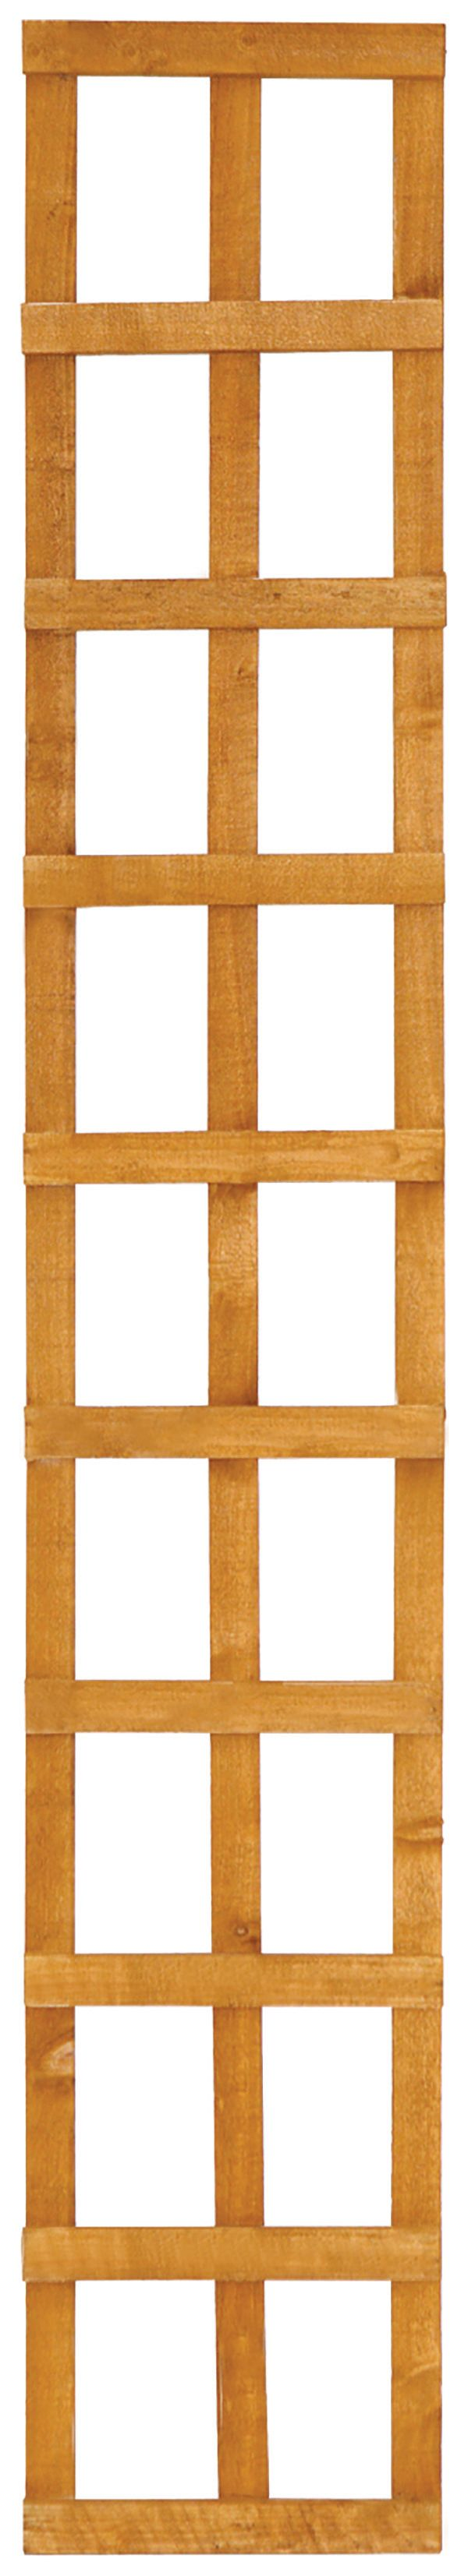 wickes top trellis square lattice fence panel 1 83m x 300mm autumn